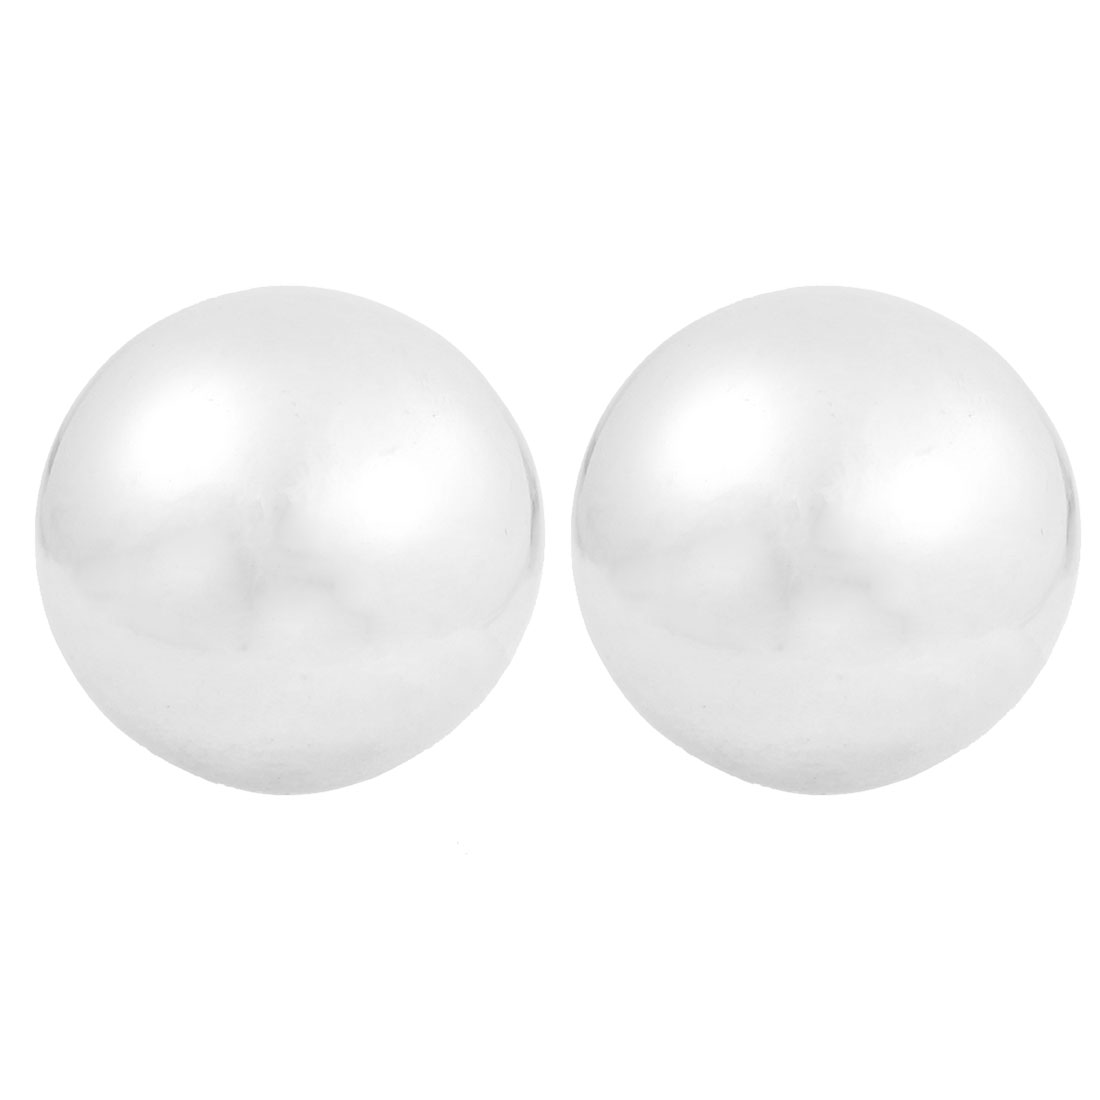 "2 Pcs Silver Tone Hand Palm Exercise 1.9"" Dia Chime Massage Ball"